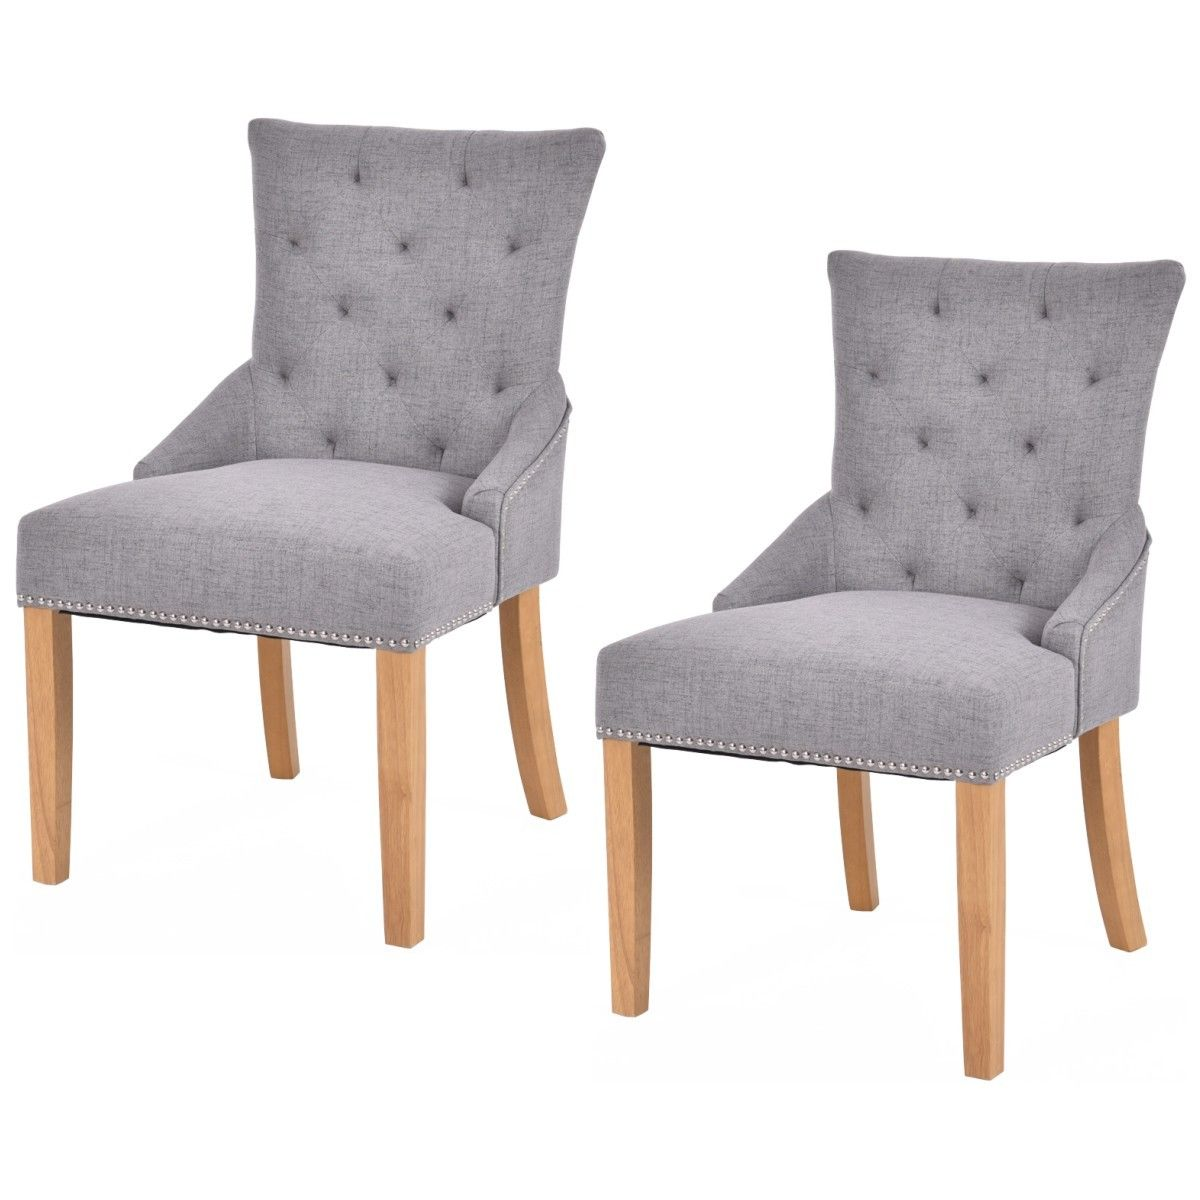 все цены на Giantex Set Of 2 Armless Dining Chairs Elegant Tufted Design Fabric Upholstered Sofa Chairs Modern Home Furniture HW53785 онлайн